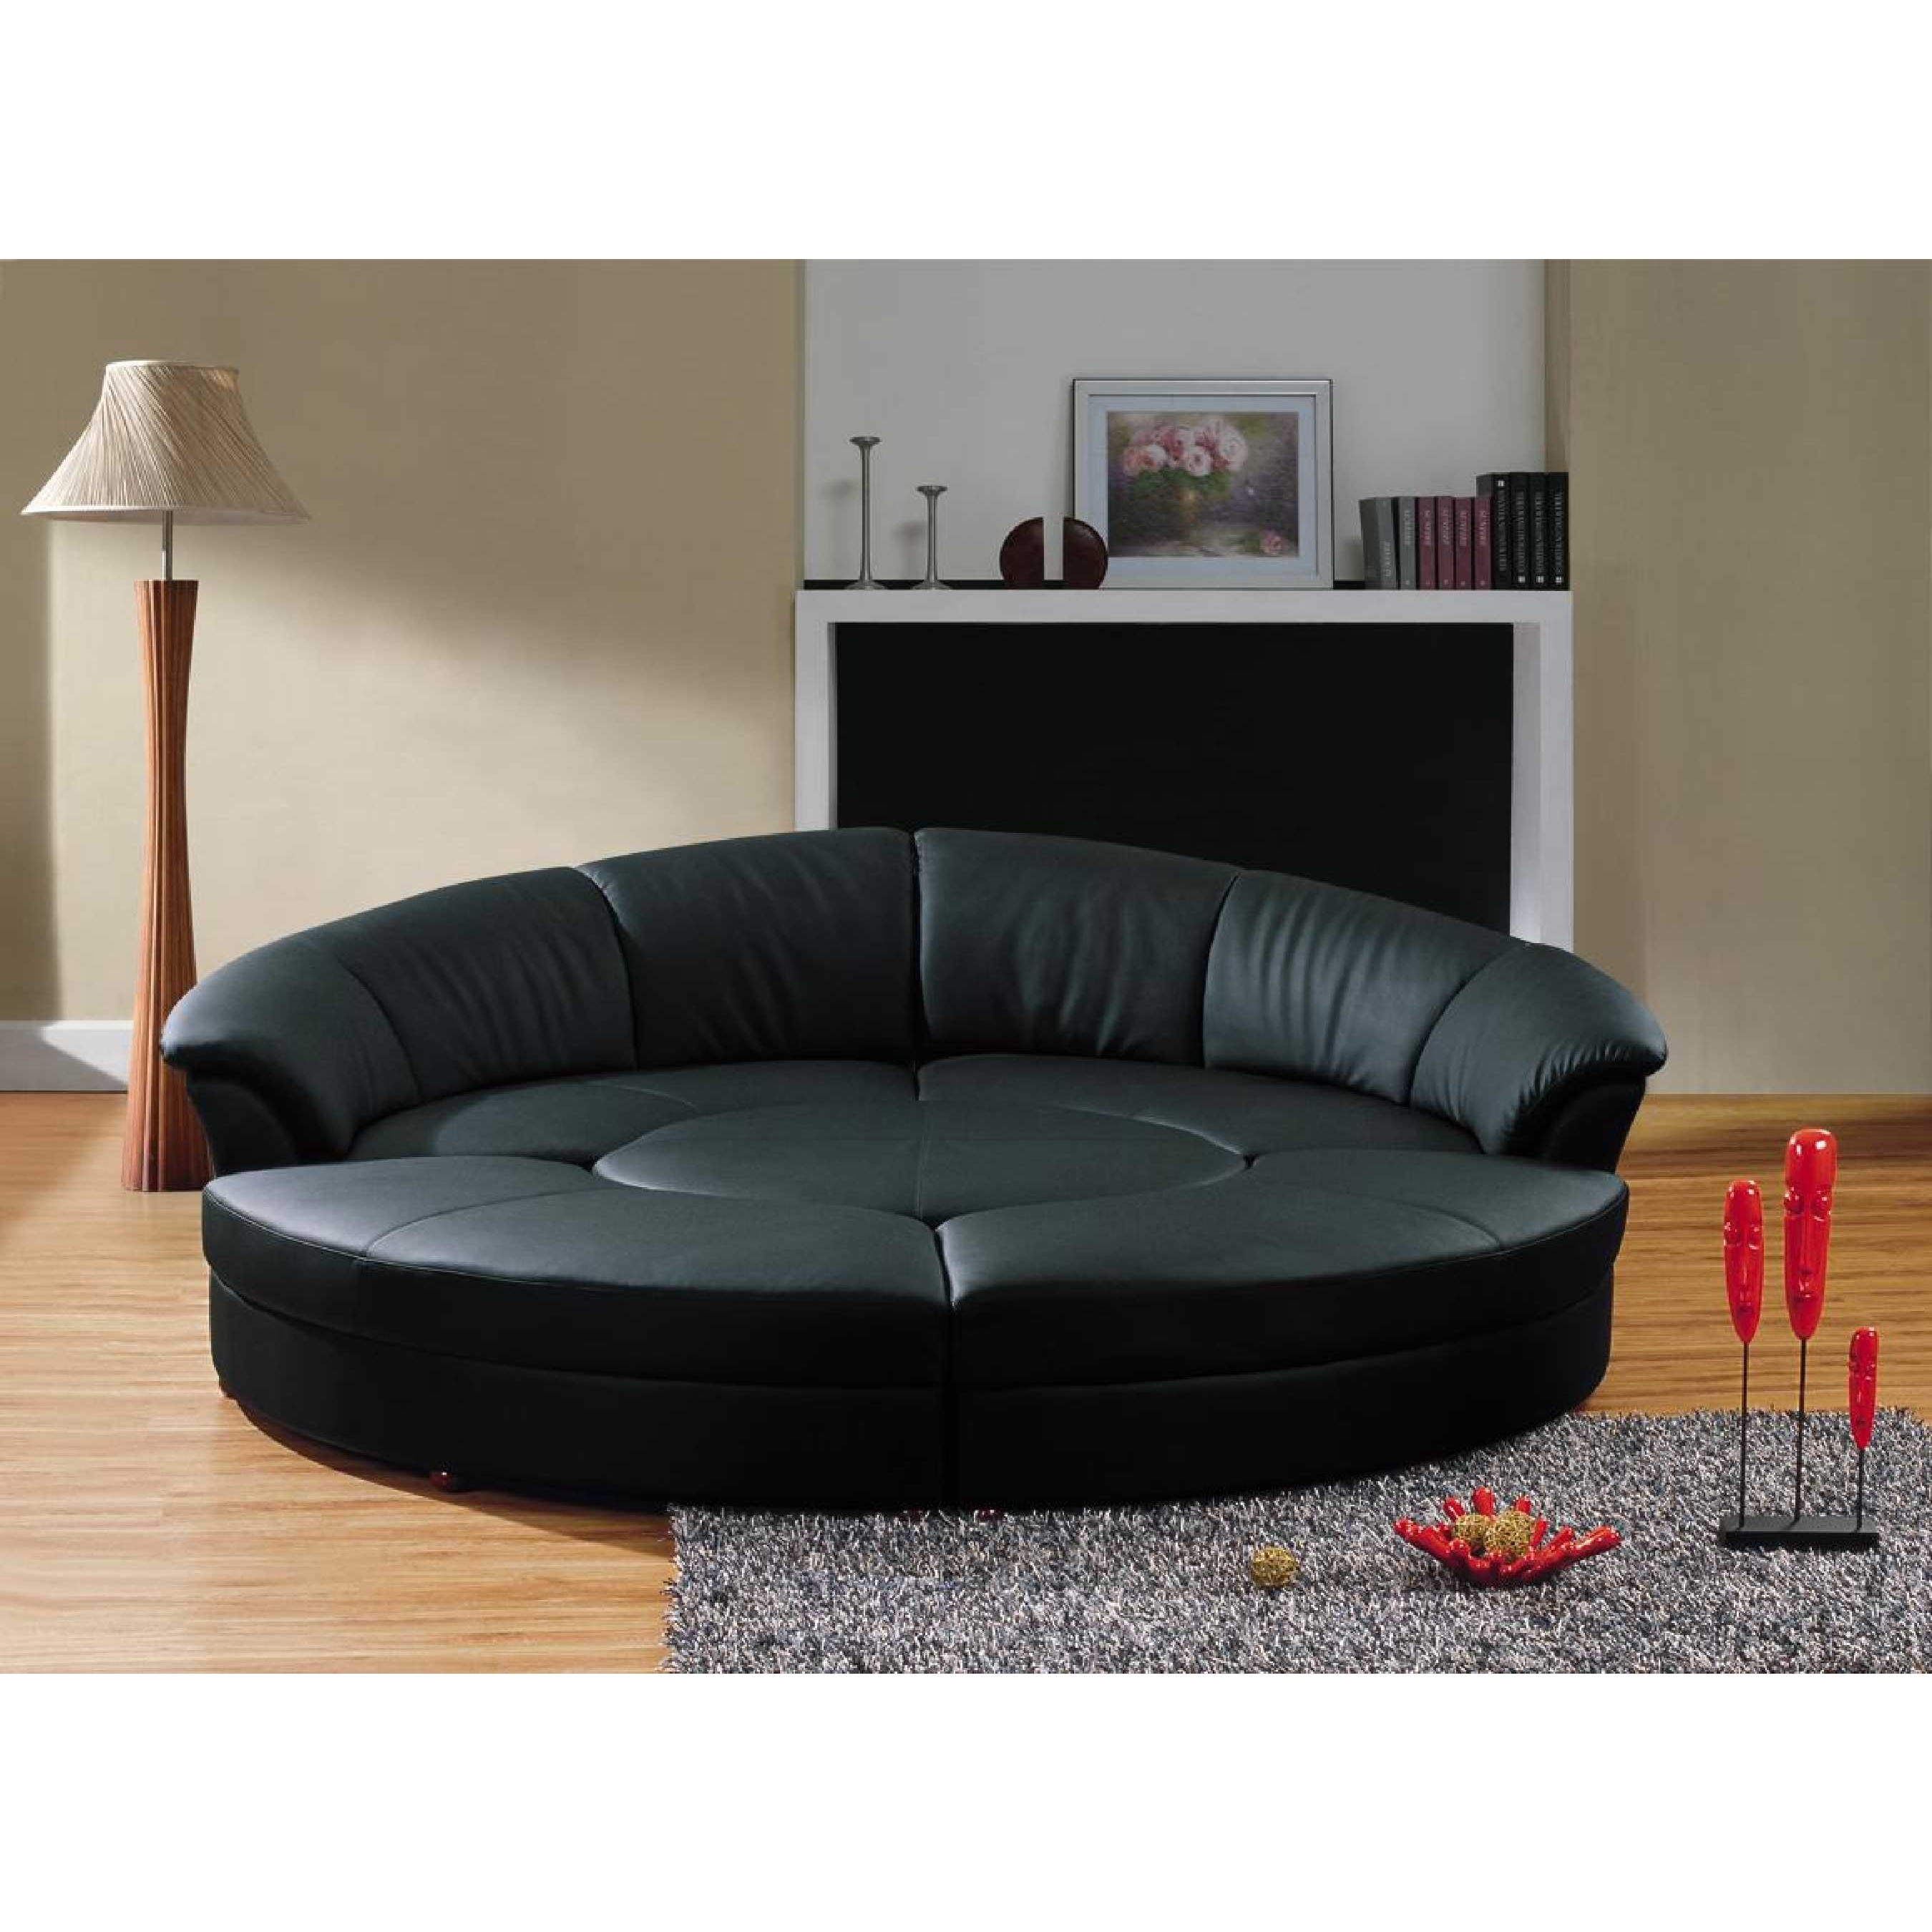 black leather cheap futons on wooden floor plus carpet for living room decor ideas